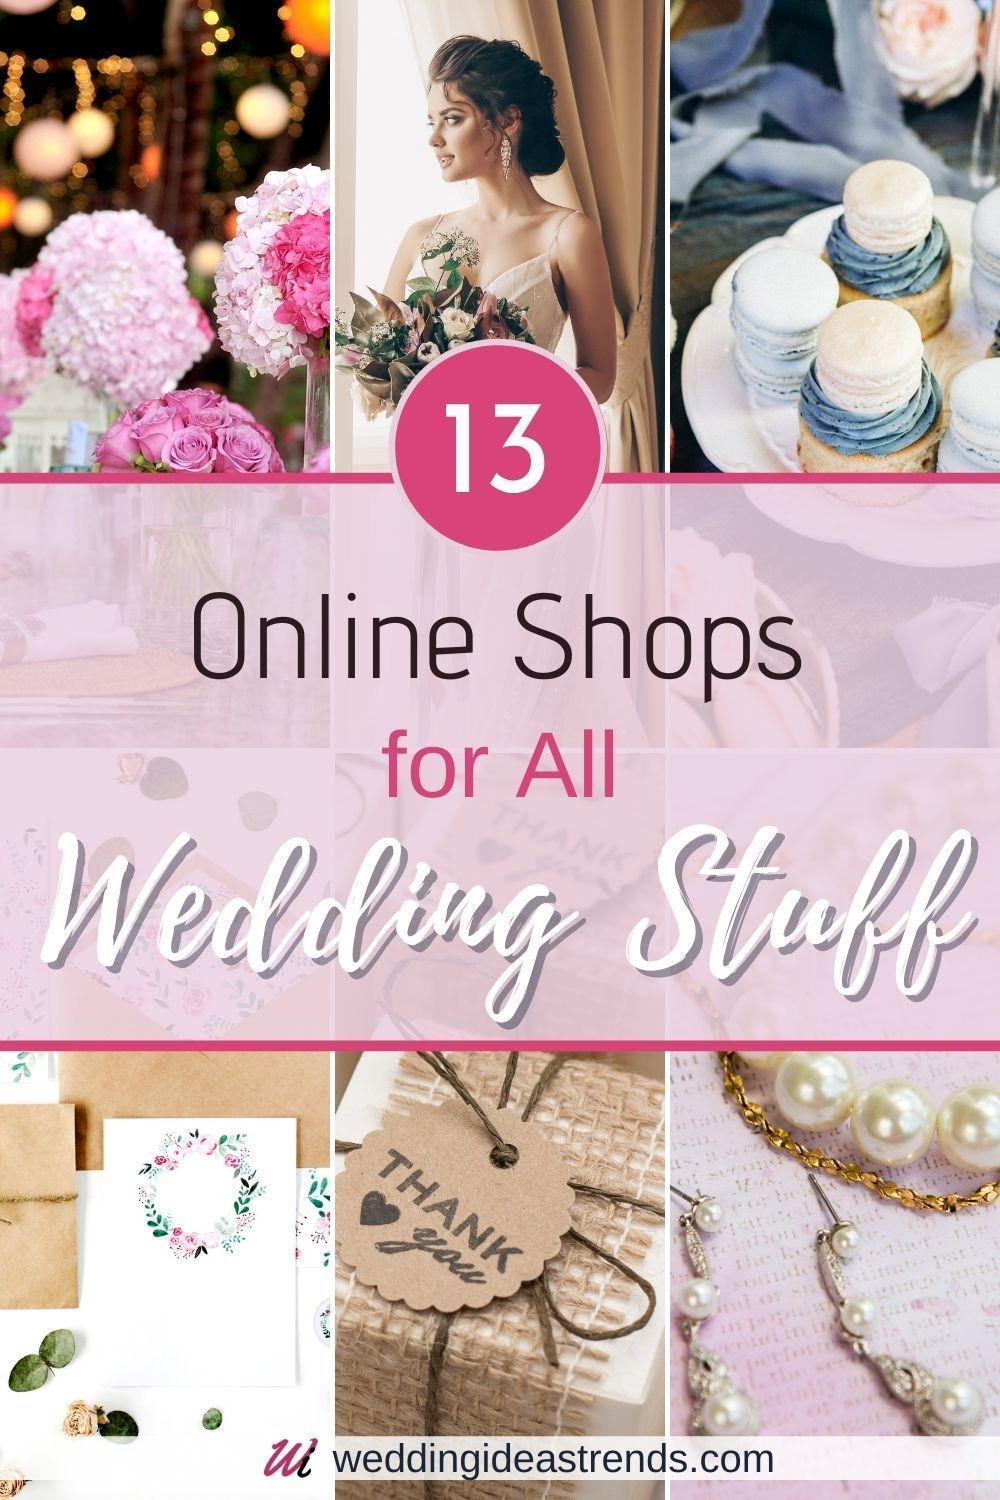 13 Online Shops For All Wedding Stuff In 2020 Wedding Gift Favors Gifts For Wedding Party Wedding Gifts For Guests